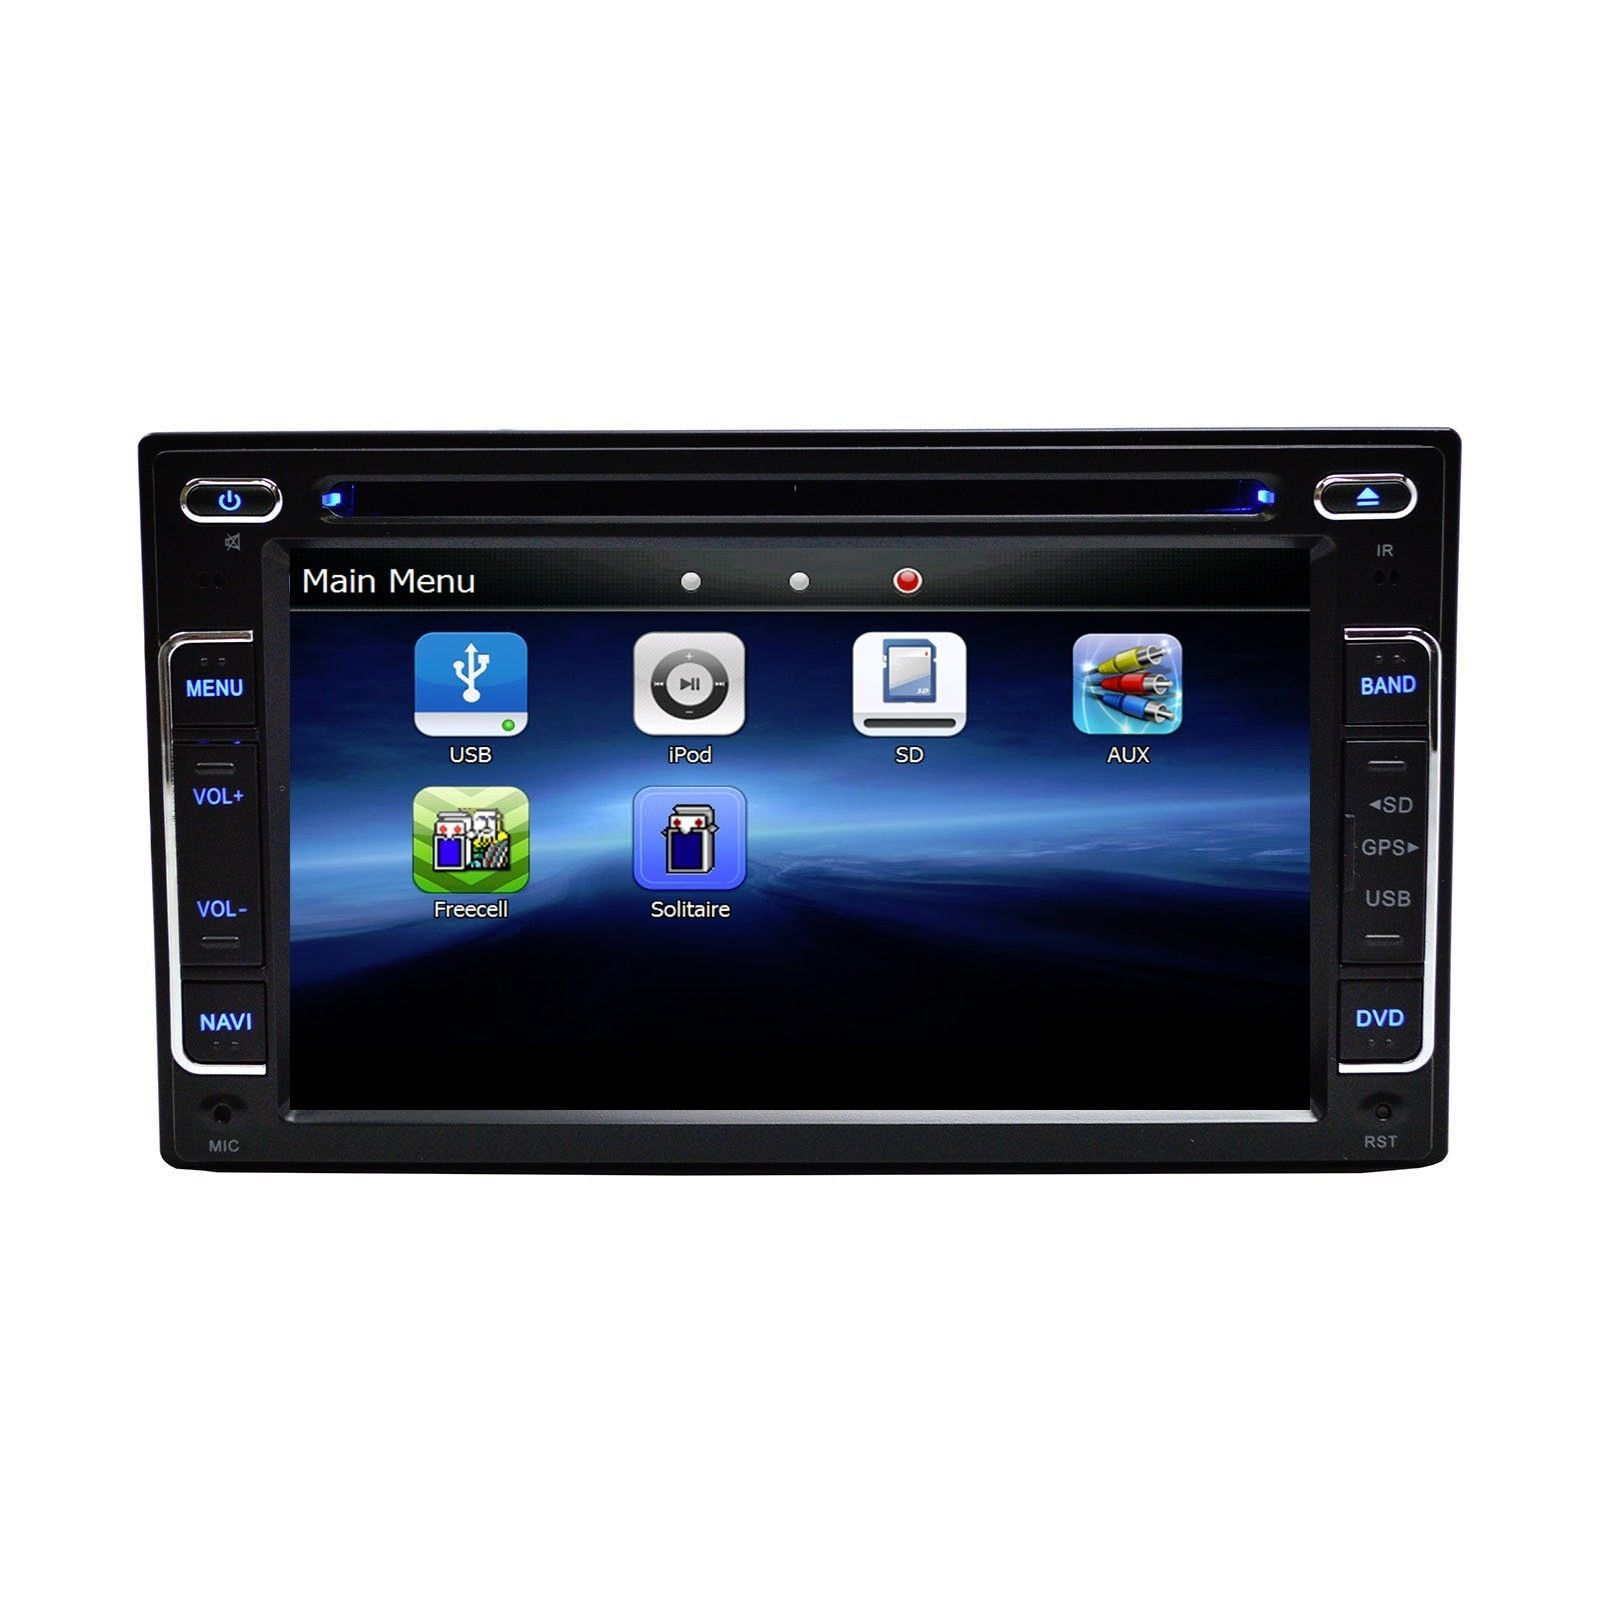 NAVIGATION SYSTEM BLUETOOTH MEDIA K-SERIES UNIVERSAL DASH KIT OE FITMENT FINISH